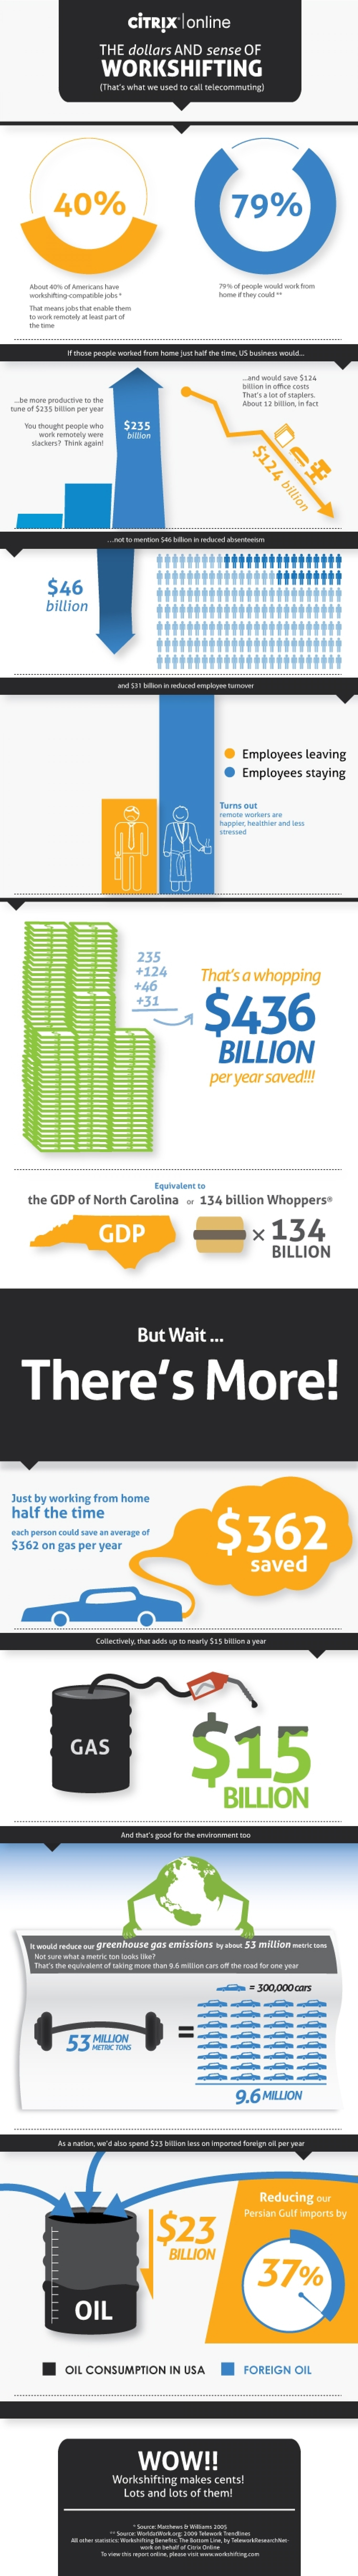 The Dollars and Sense of Workshifting Infographic